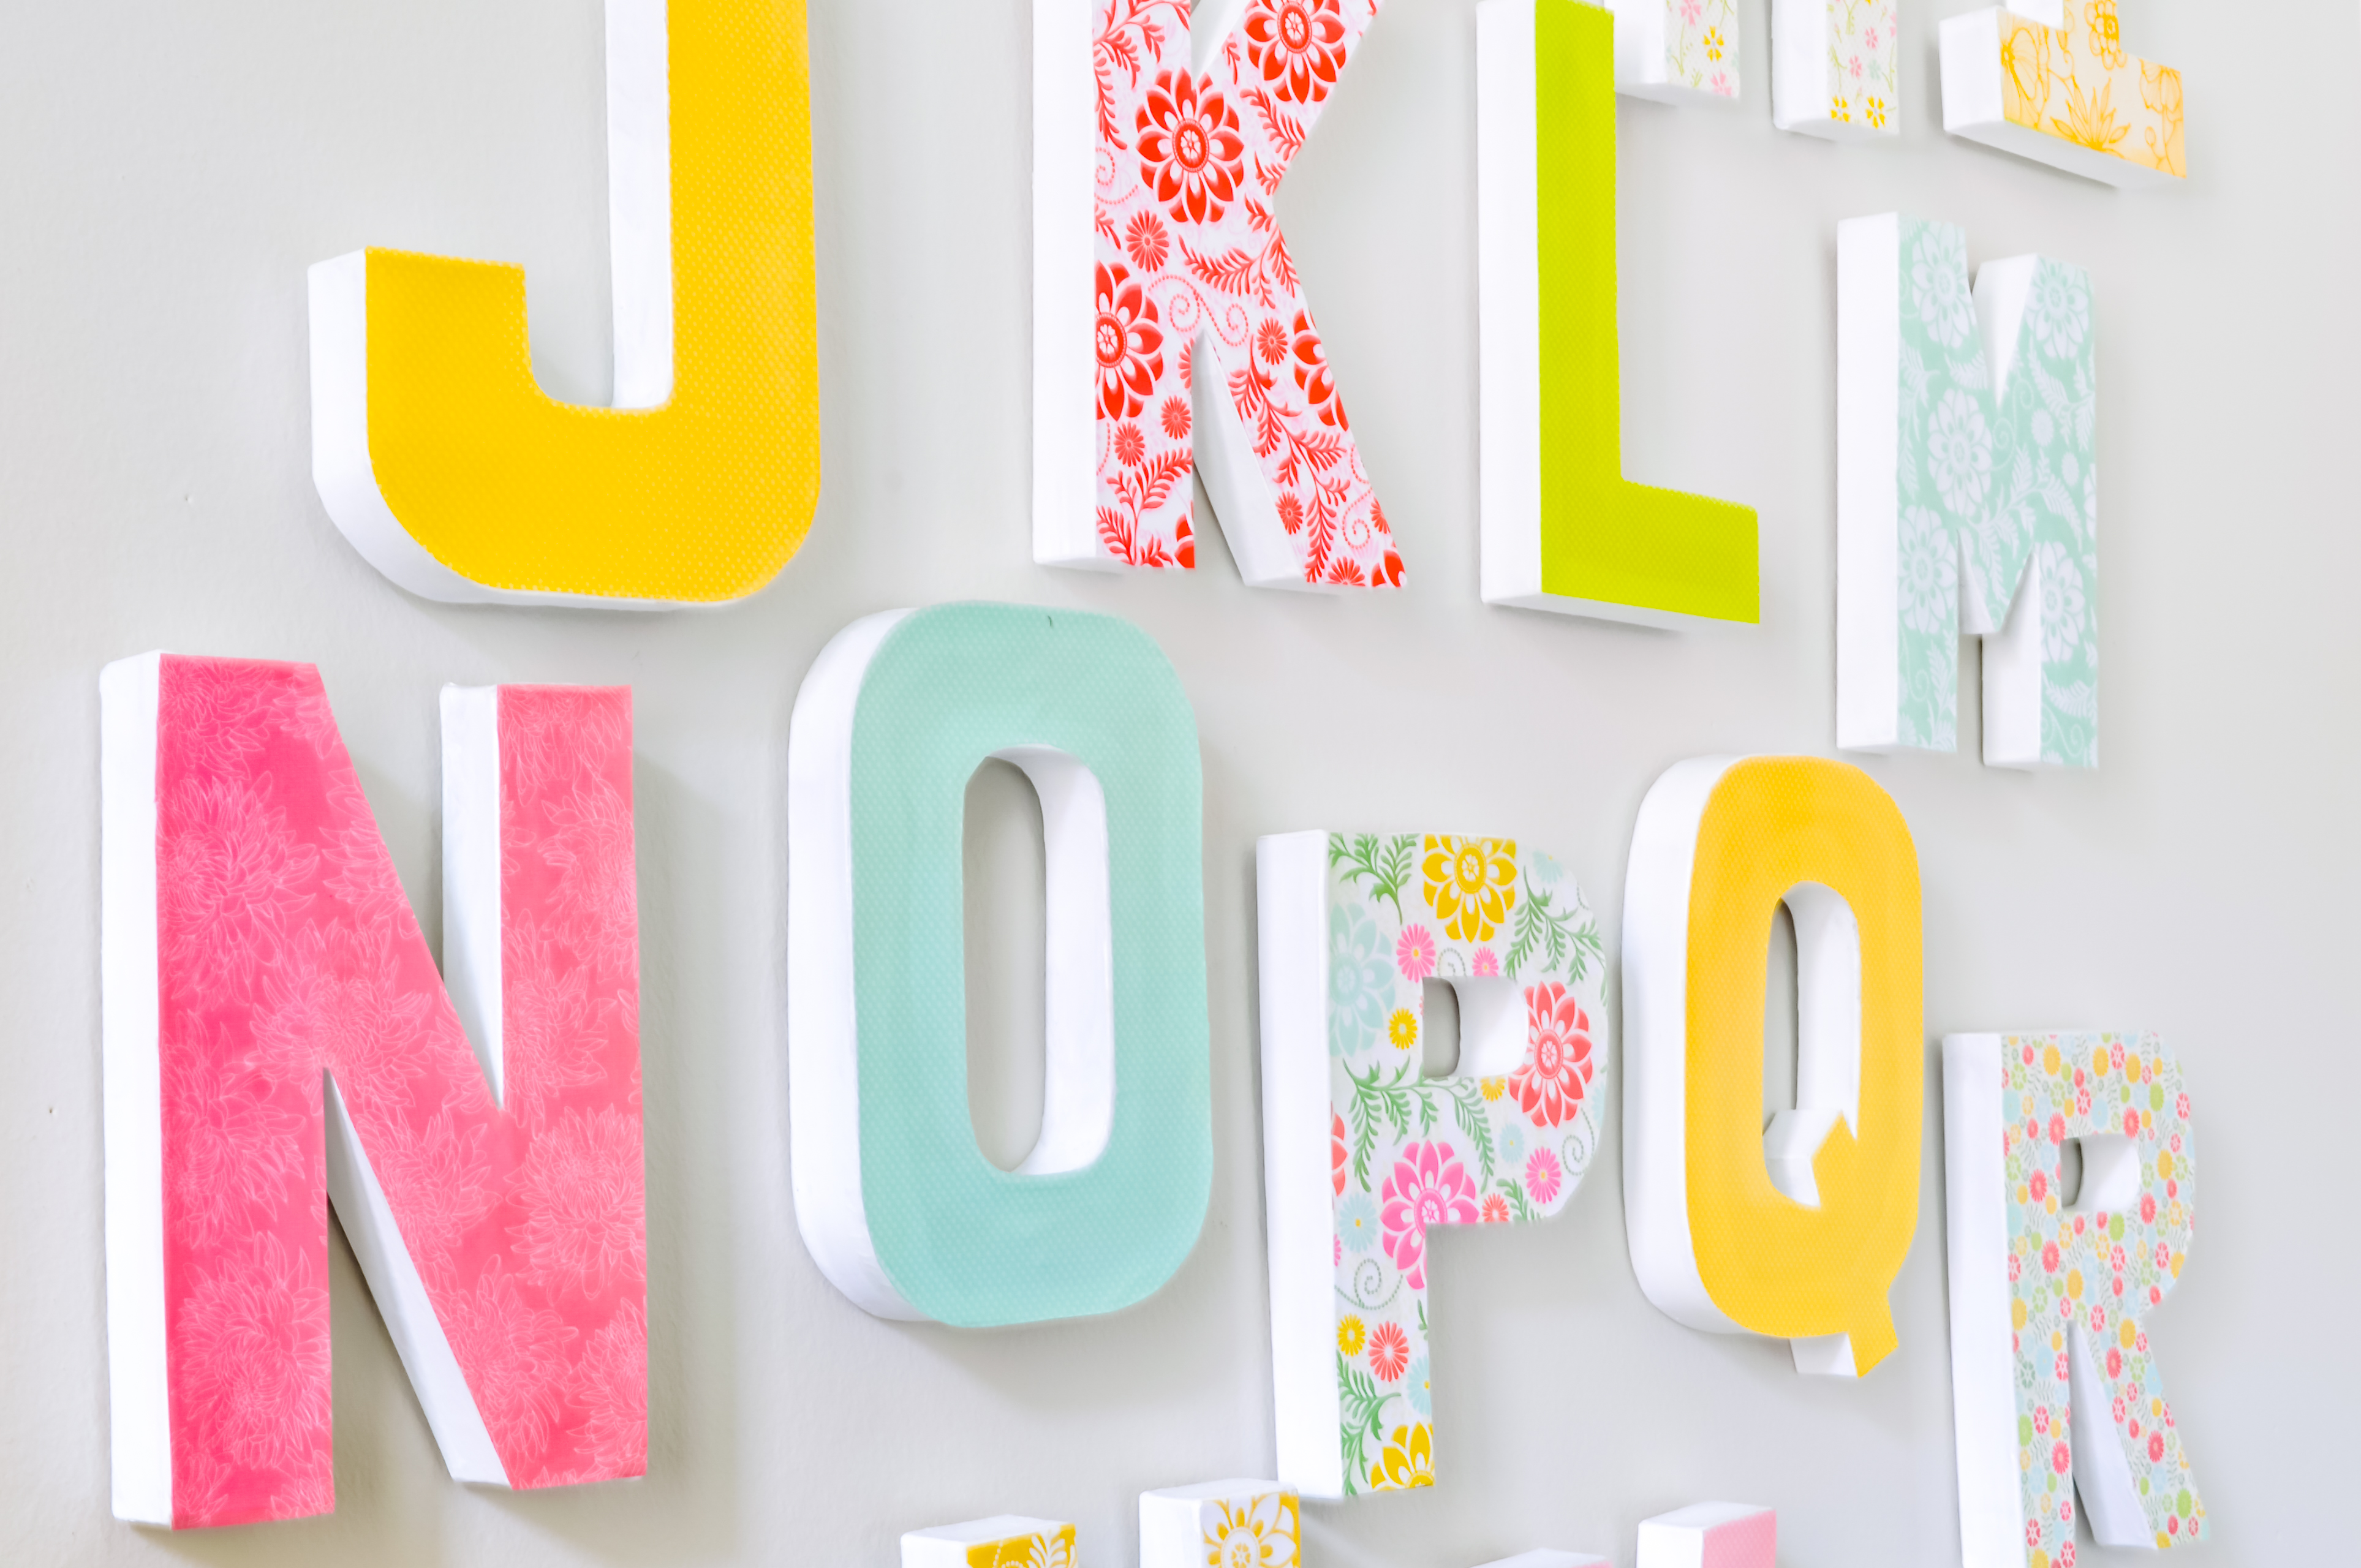 Sometimes You Just Want A Letter Wall Decor As Statement Piece Without The Added Price